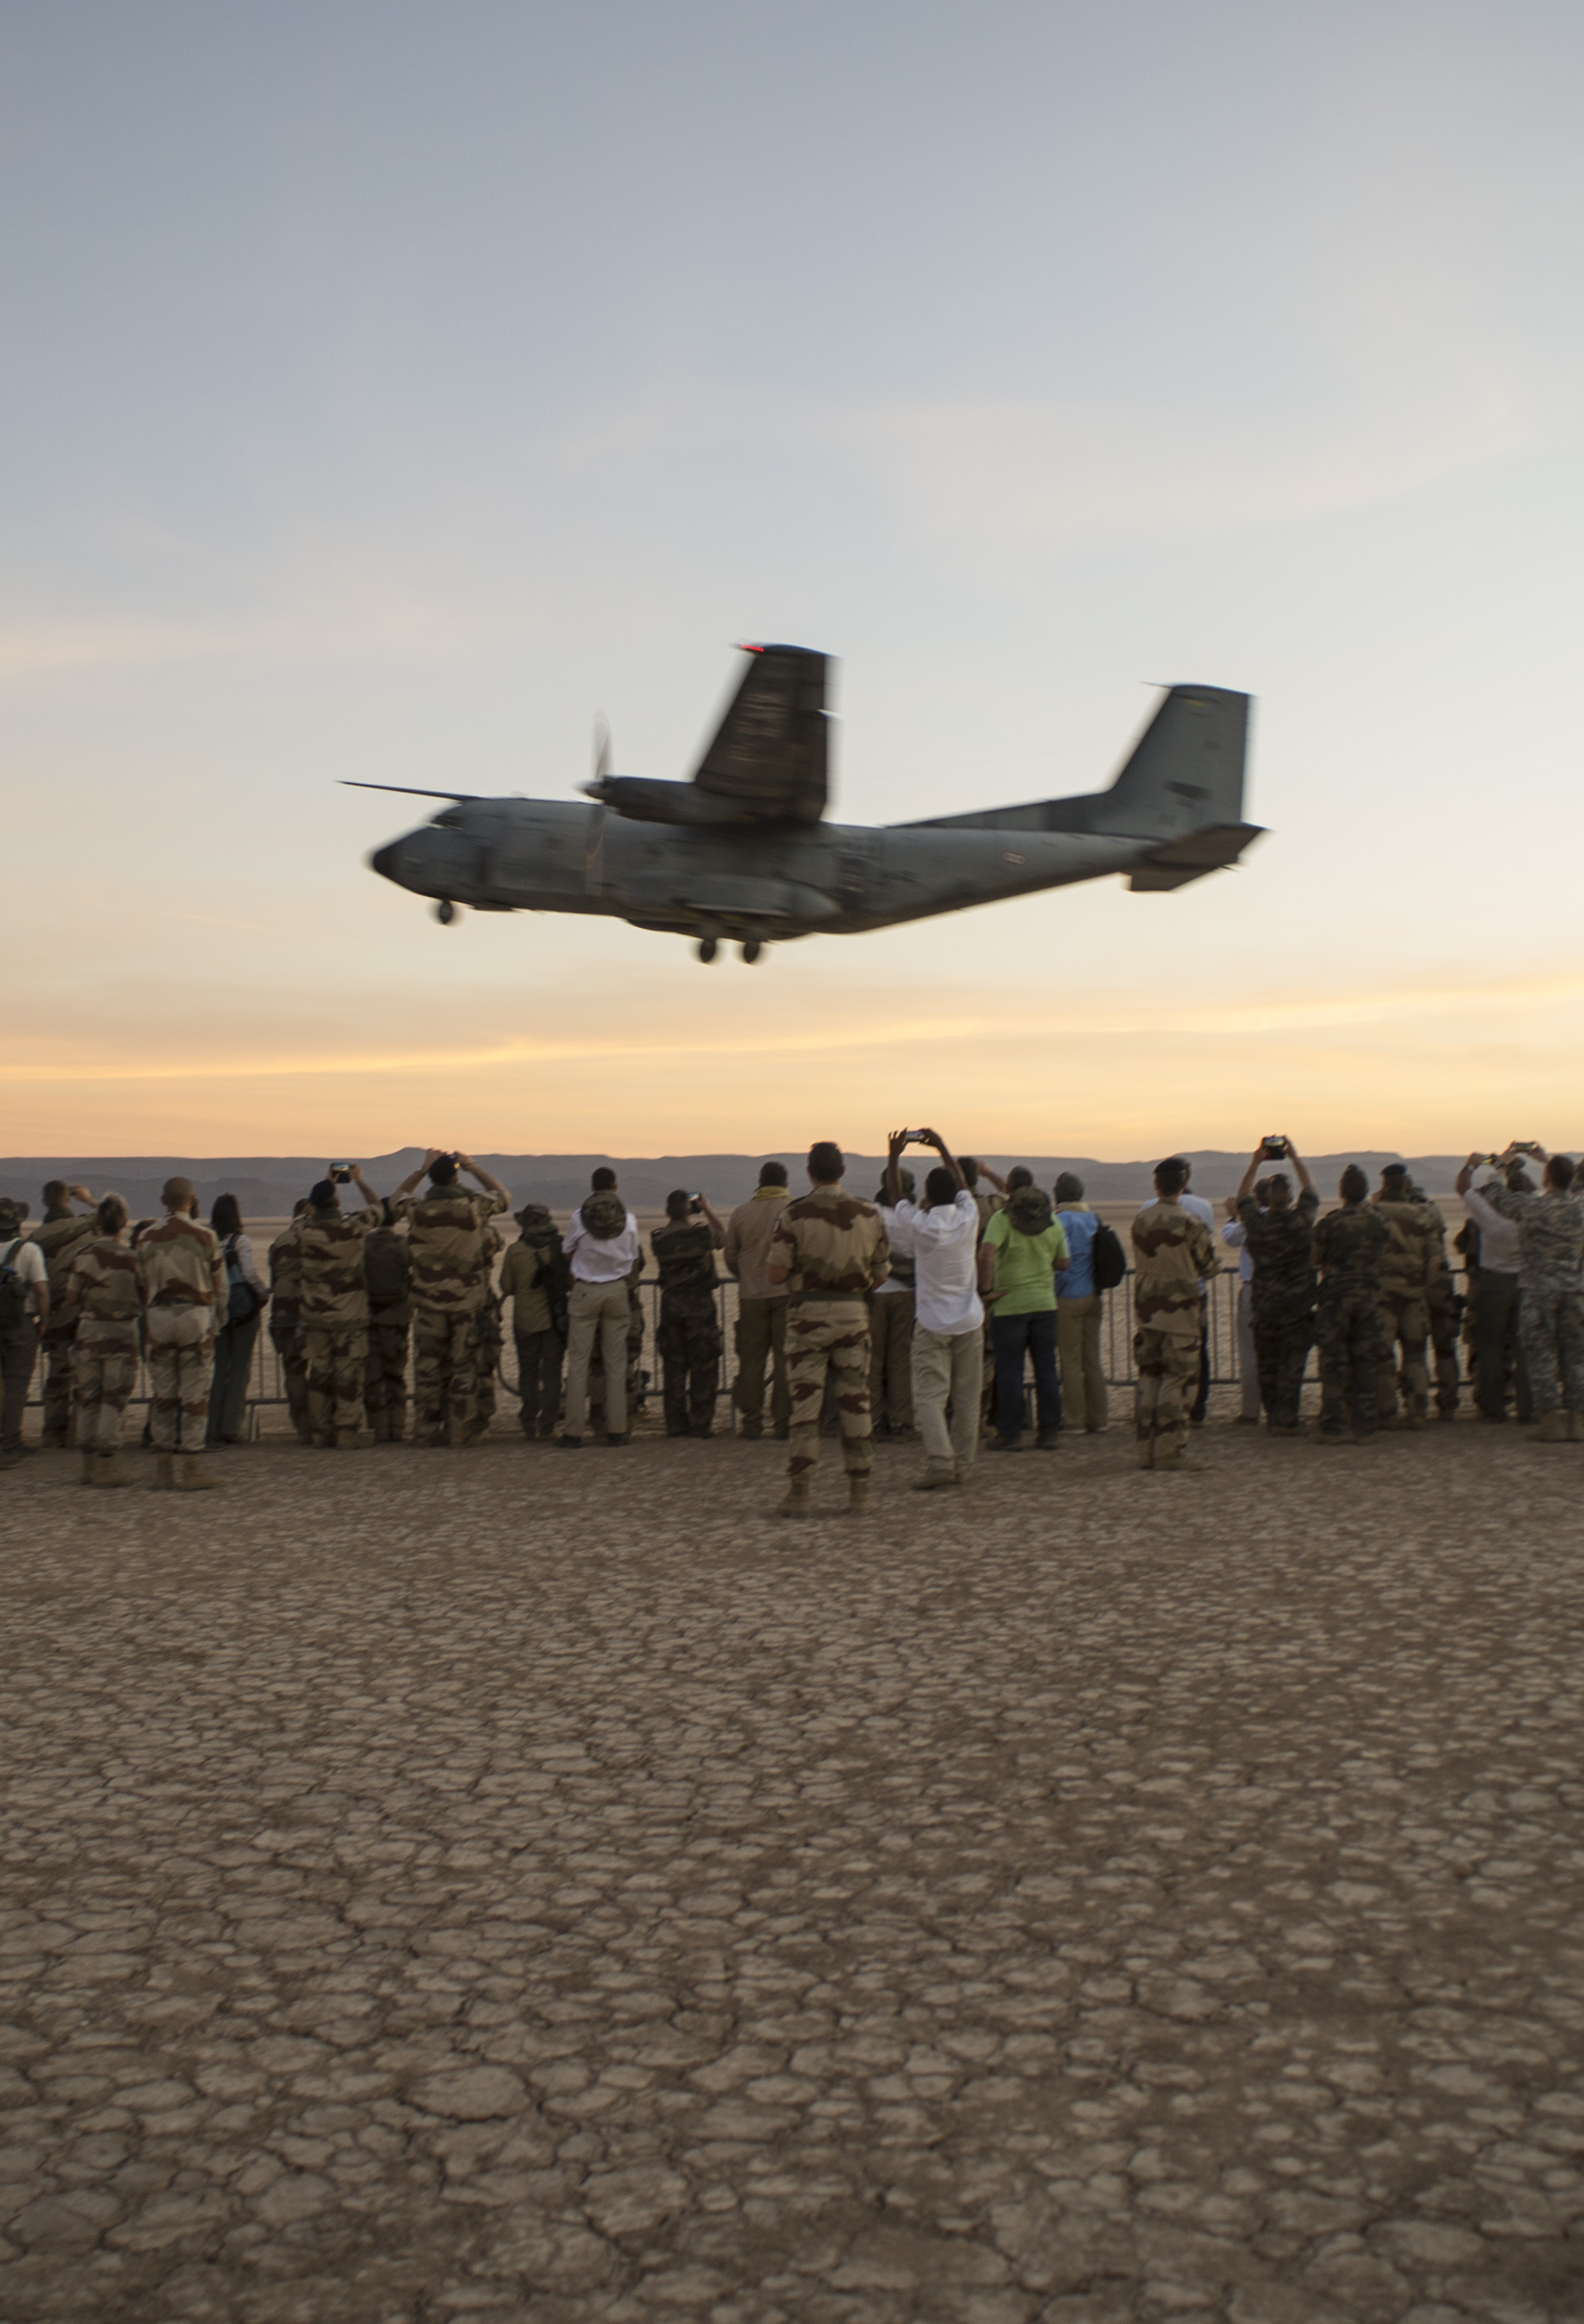 A French C-160 Transall transport aircraft takes off in front of a crowd of onlookers during the French live fire demonstration near Grand Bara, Djibouti, Jan. 14, 2017. The C-160 Transall is a tactical transport aircraft capable of carrying up to 93 troops with the ability to take off on an airstrip as short as 700 meters. (U.S. Air National Guard photo by:  Staff Sgt. Christian Jadot)